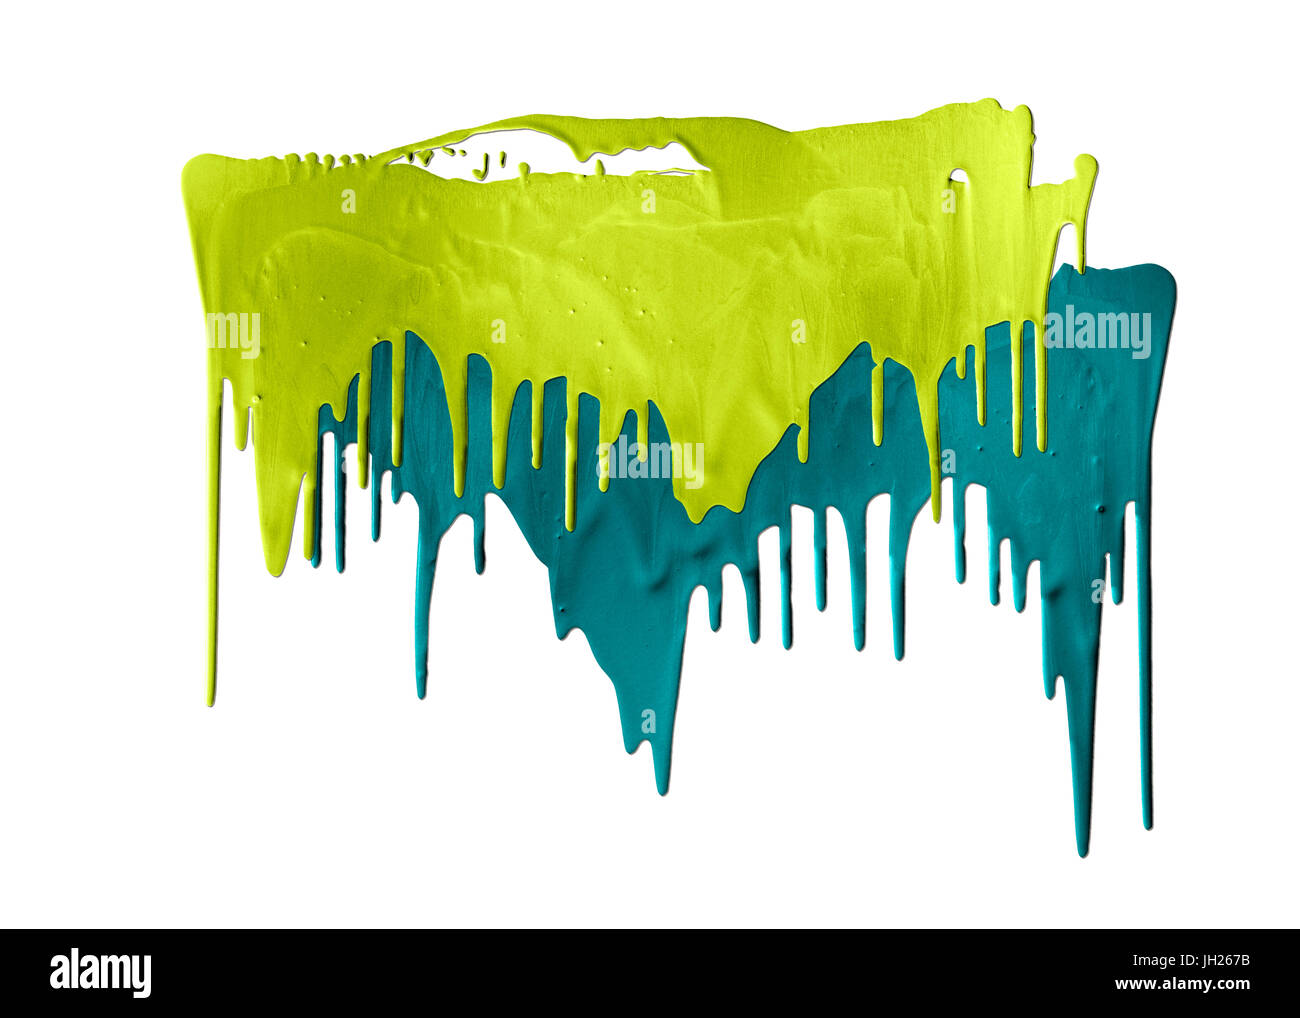 two shades of green paints dripping isolated on white background - Stock Image